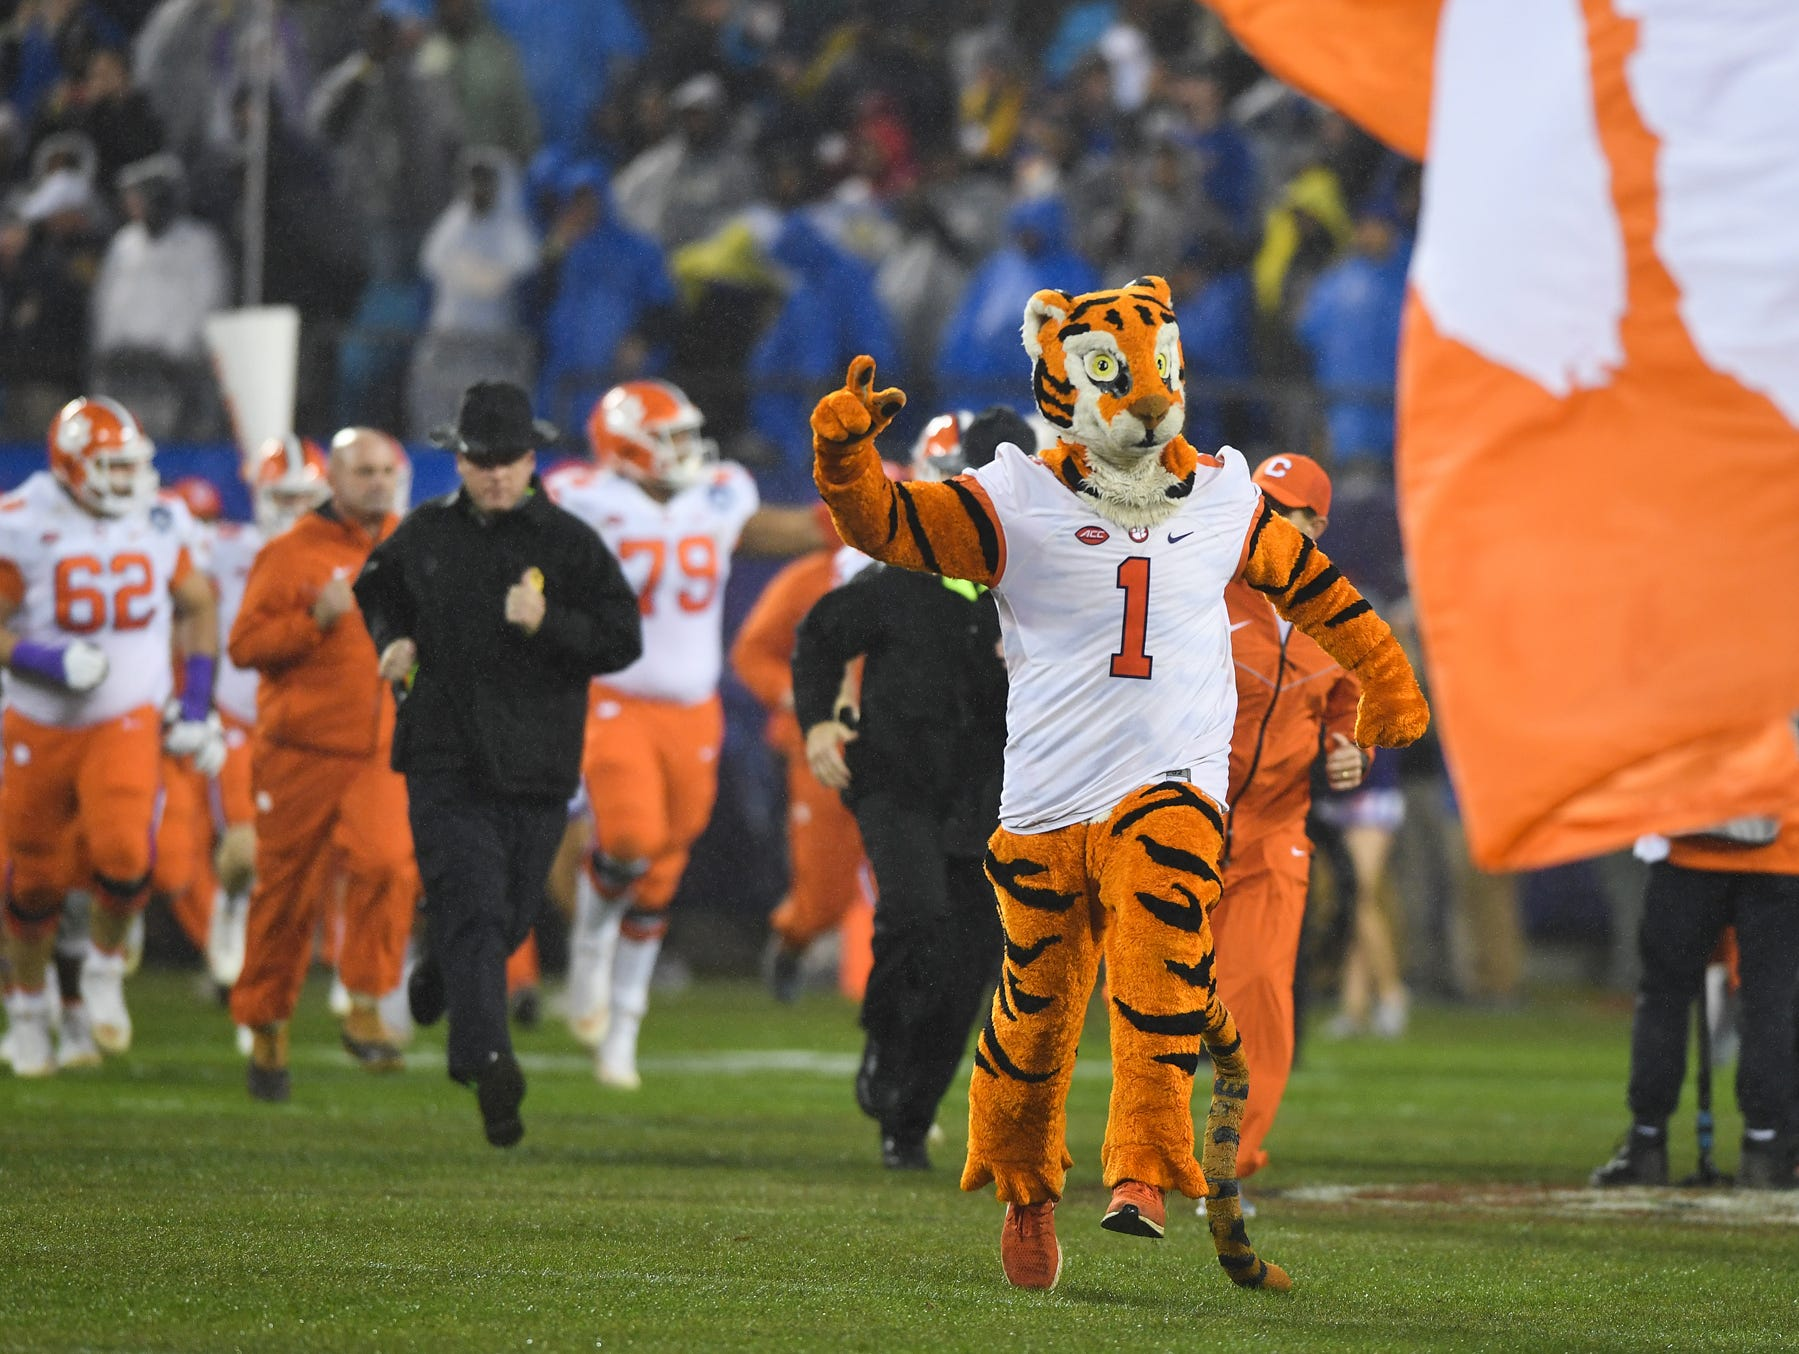 Clemson runs onto the field during pregame of the Dr. Pepper ACC Championship at Bank of America Stadium in Charlotte, N.C. Saturday, December 1, 2018.